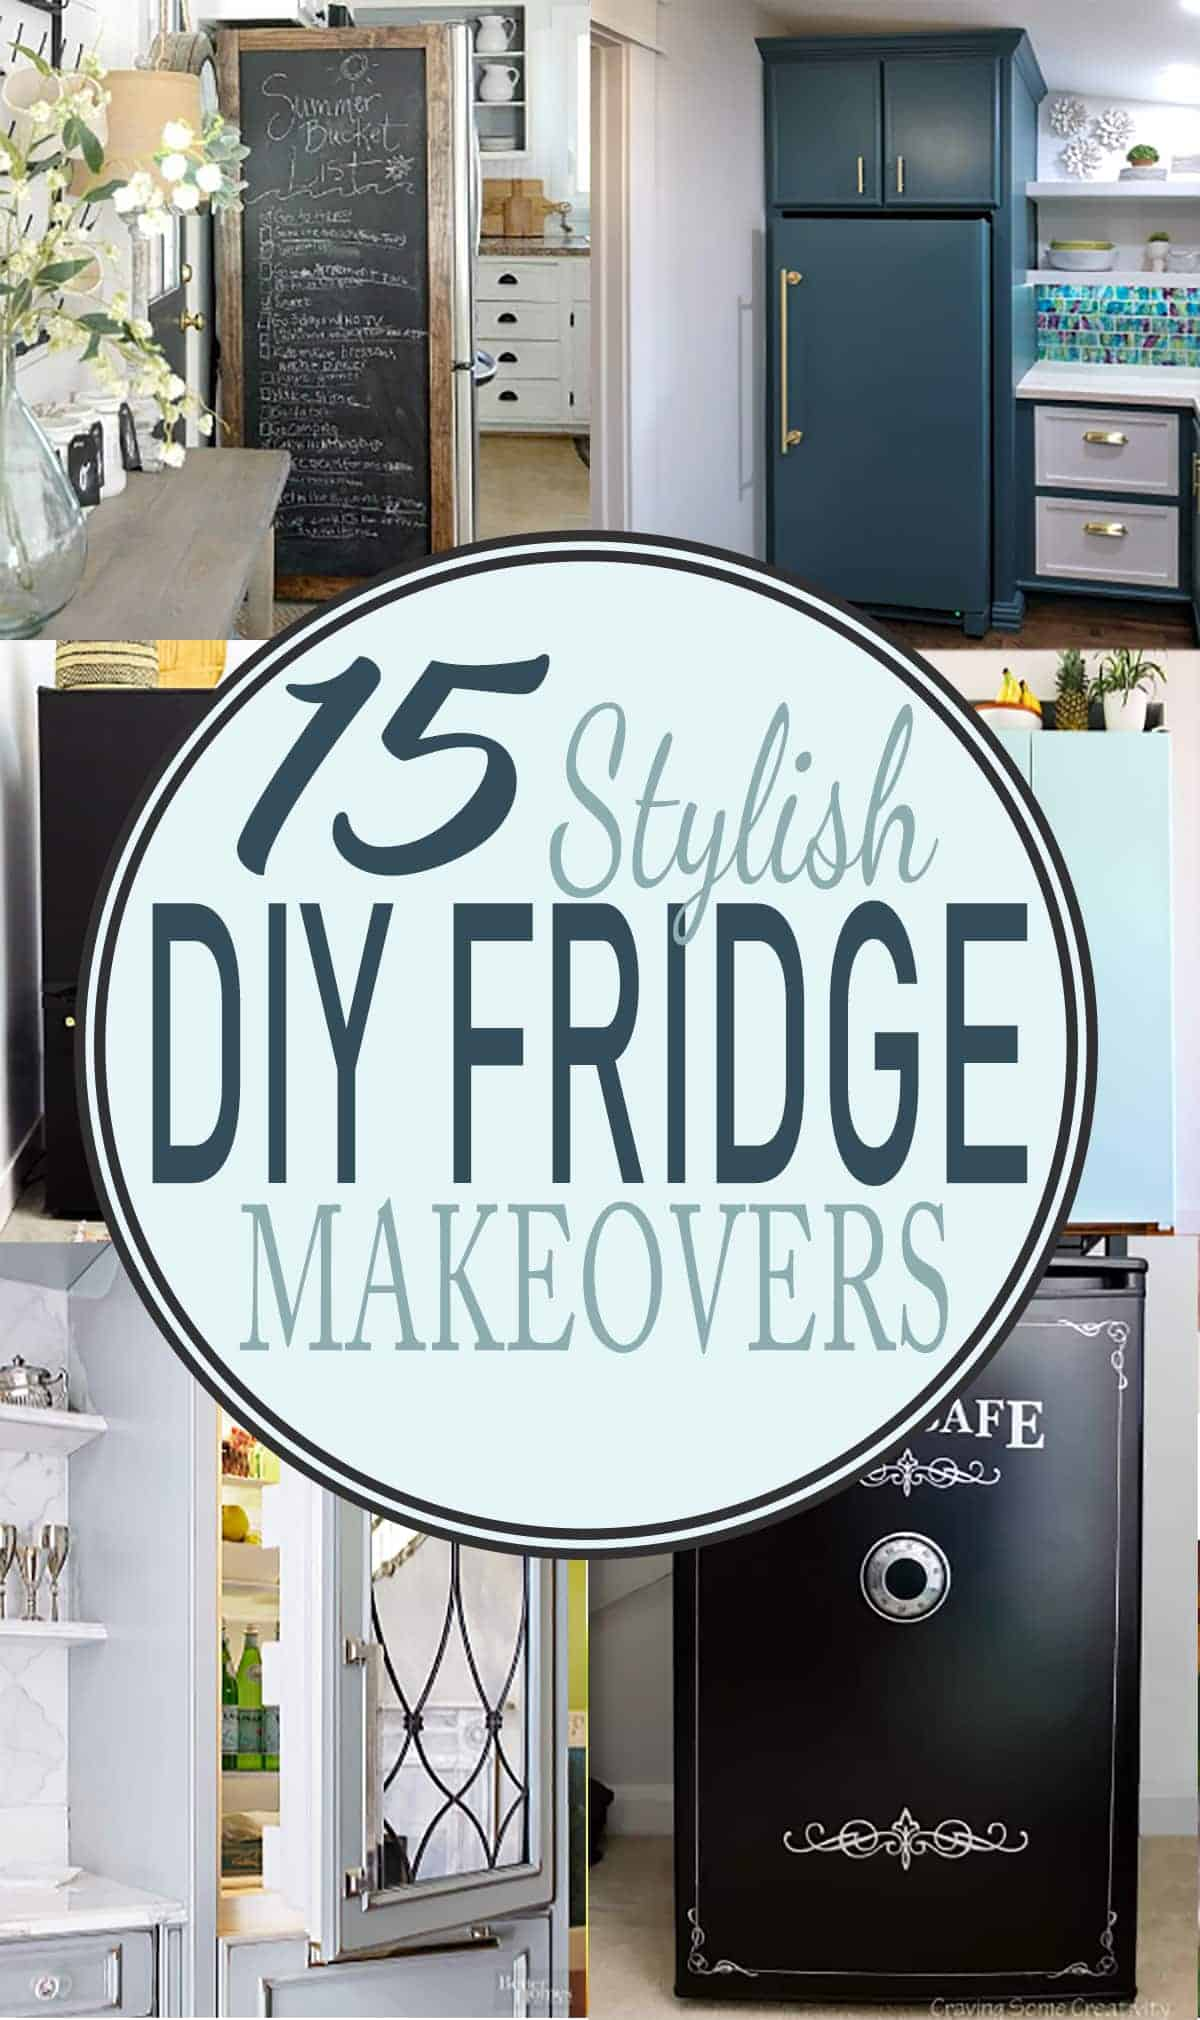 Collage of stylish home refrigerator makeovers with post title.